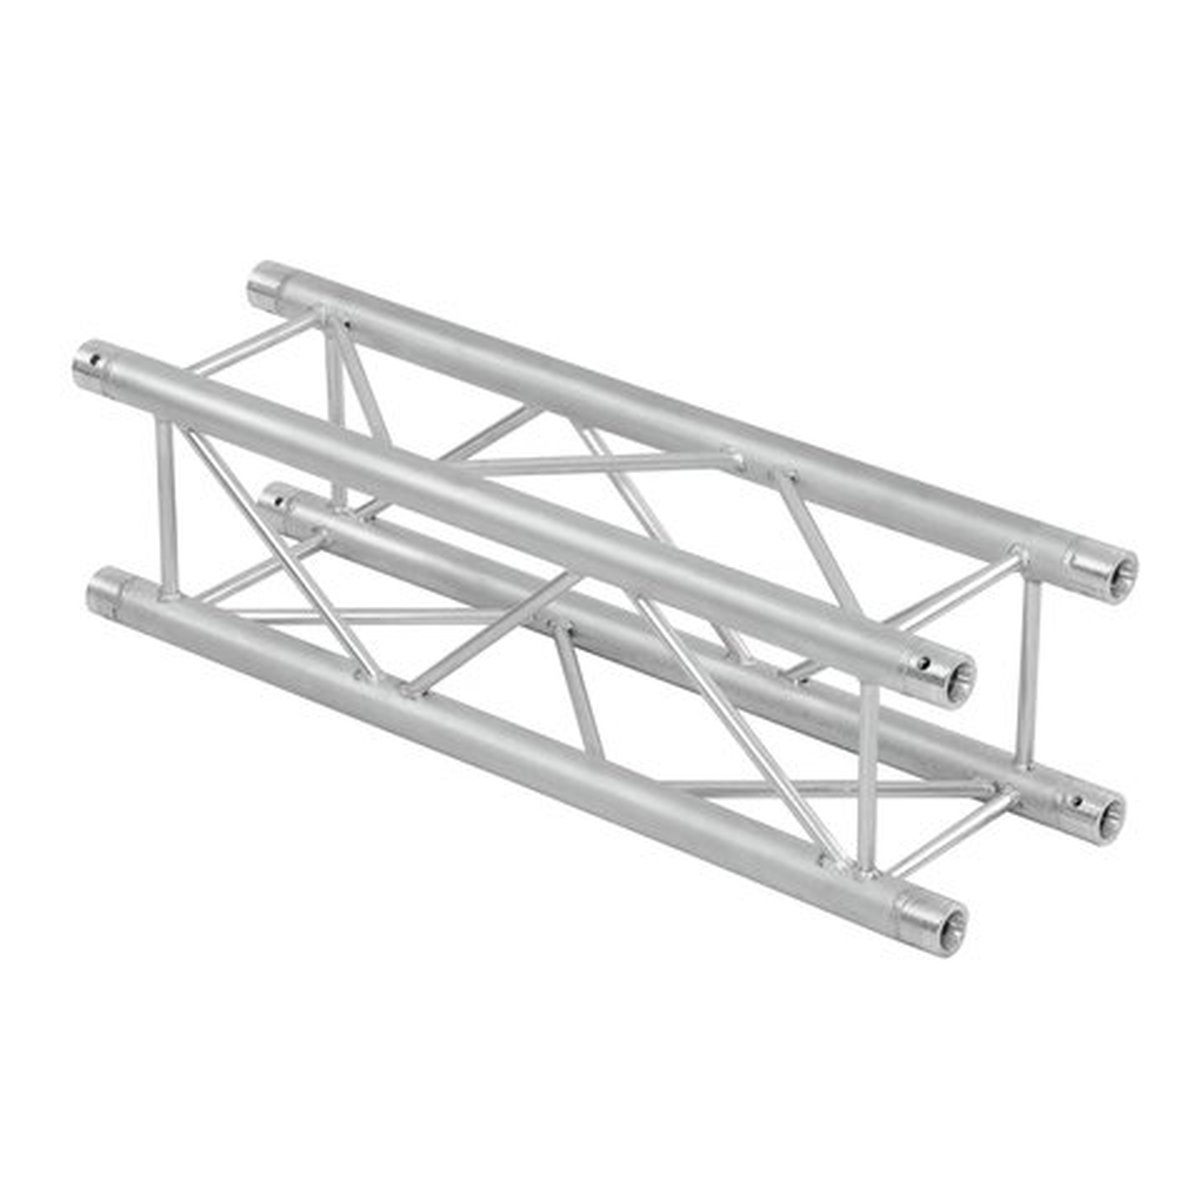 Alutruss Quadlock QL-ET34-3500 4-way cross beam